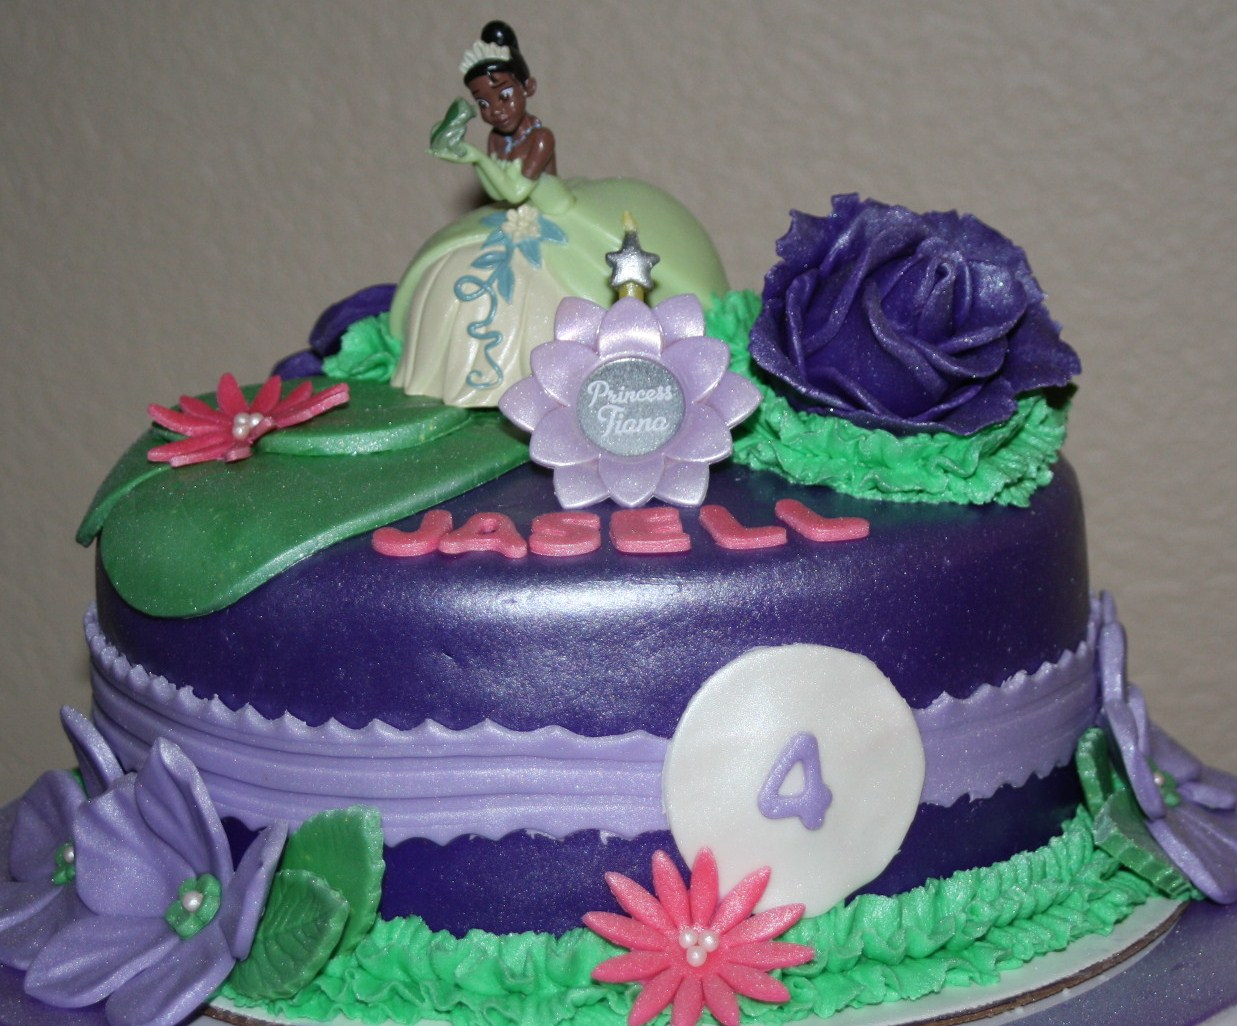 Princess Tiana Cake Pictures : Princess Tiana Cake Scooters Cake Creations - by Rachel ...